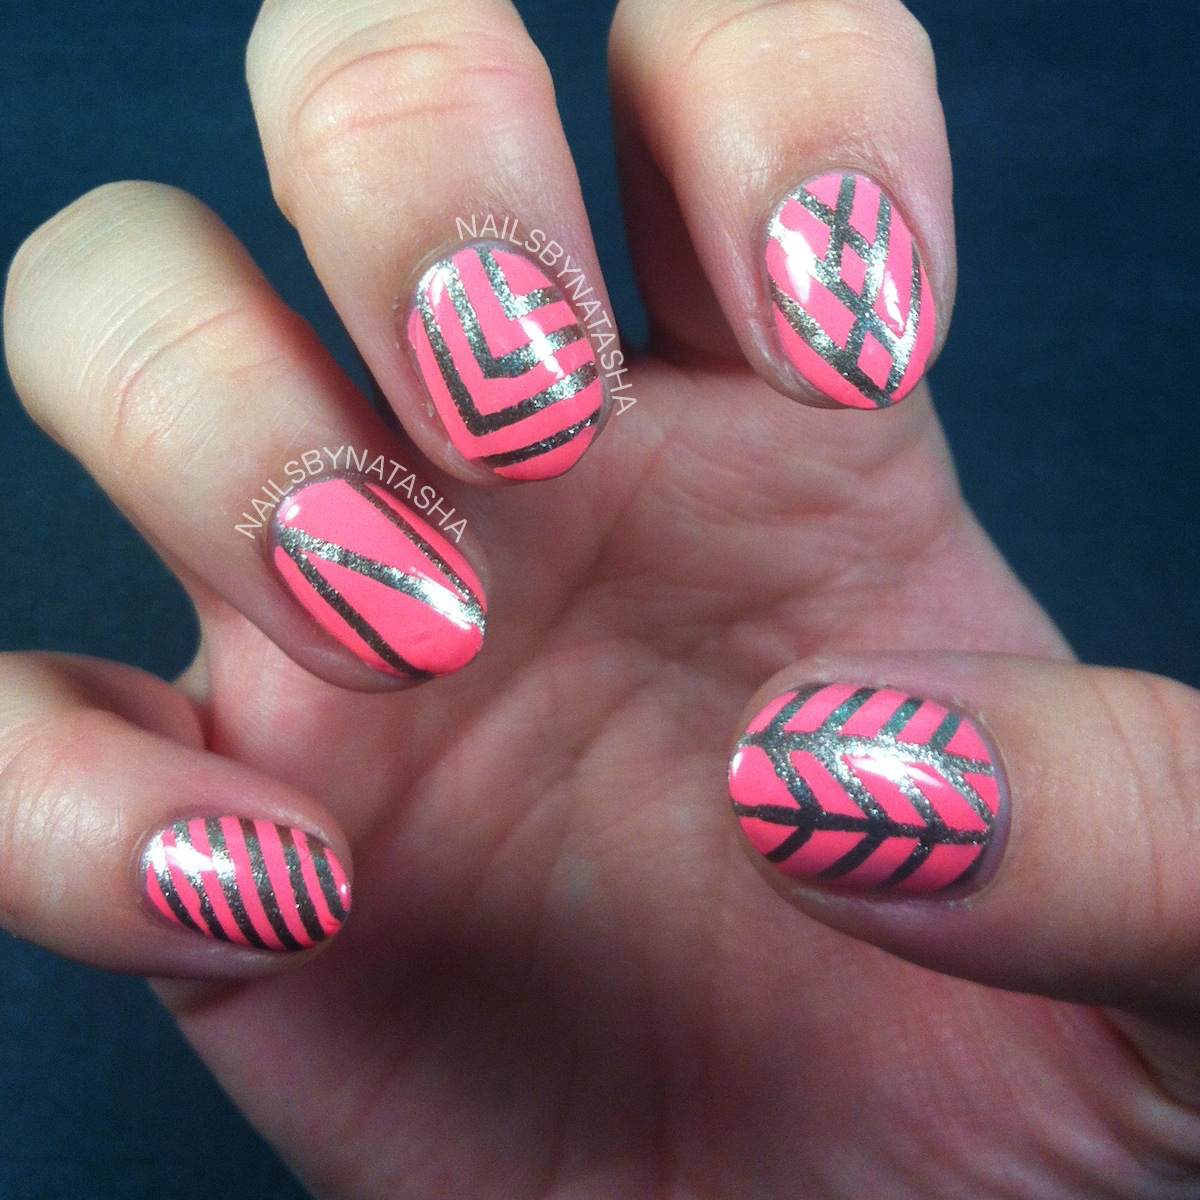 Nail Designs With Tape | Nail Art Designs